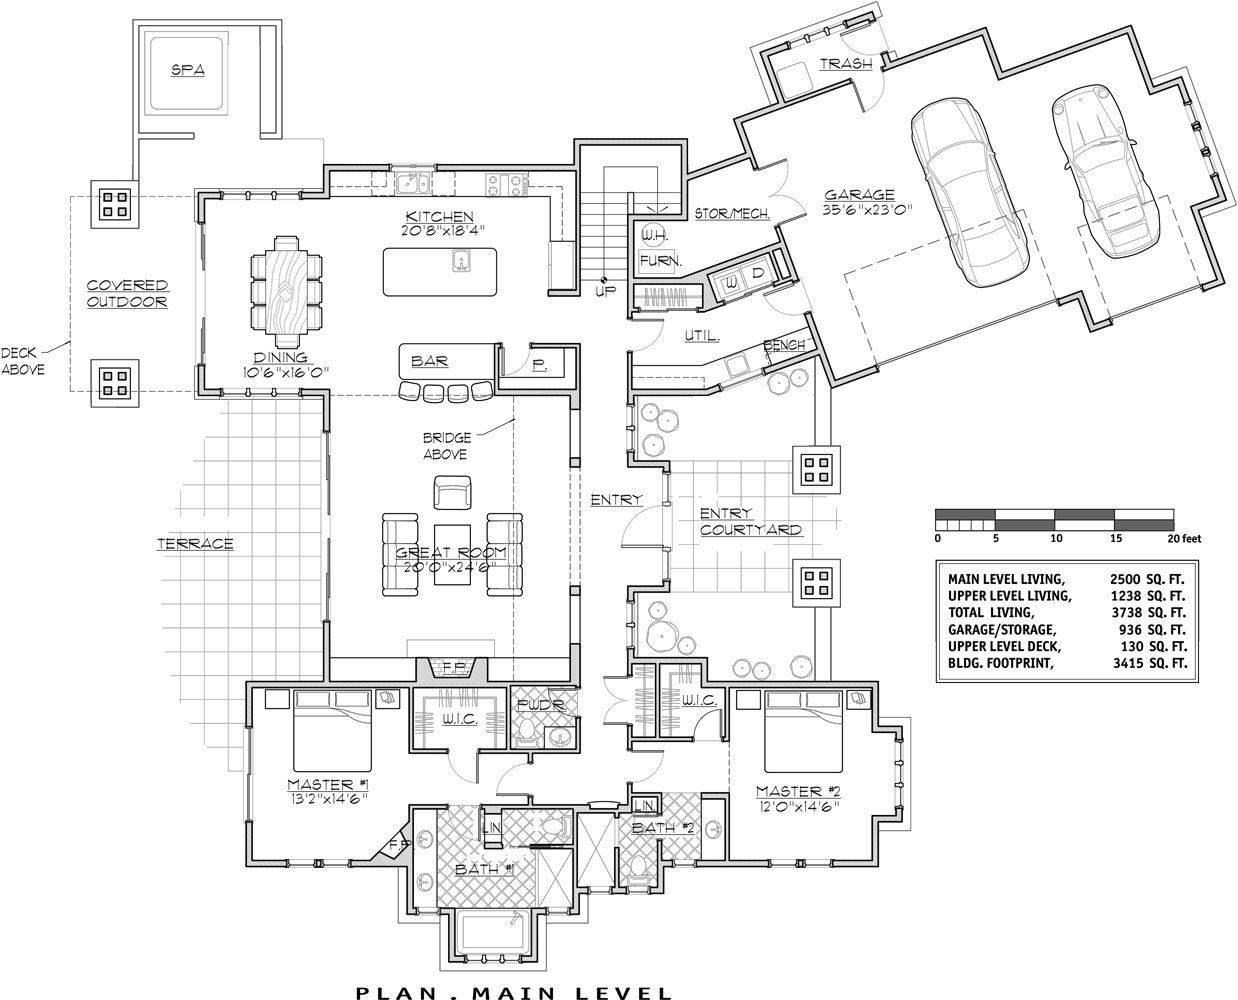 1st Floor Plan Image Of Luxury Lakehouse Http Www Thehousedesigners Com Plan Luxury Lakehouse 9046 House Plans Craftsman Floor Plans Vacation House Plans